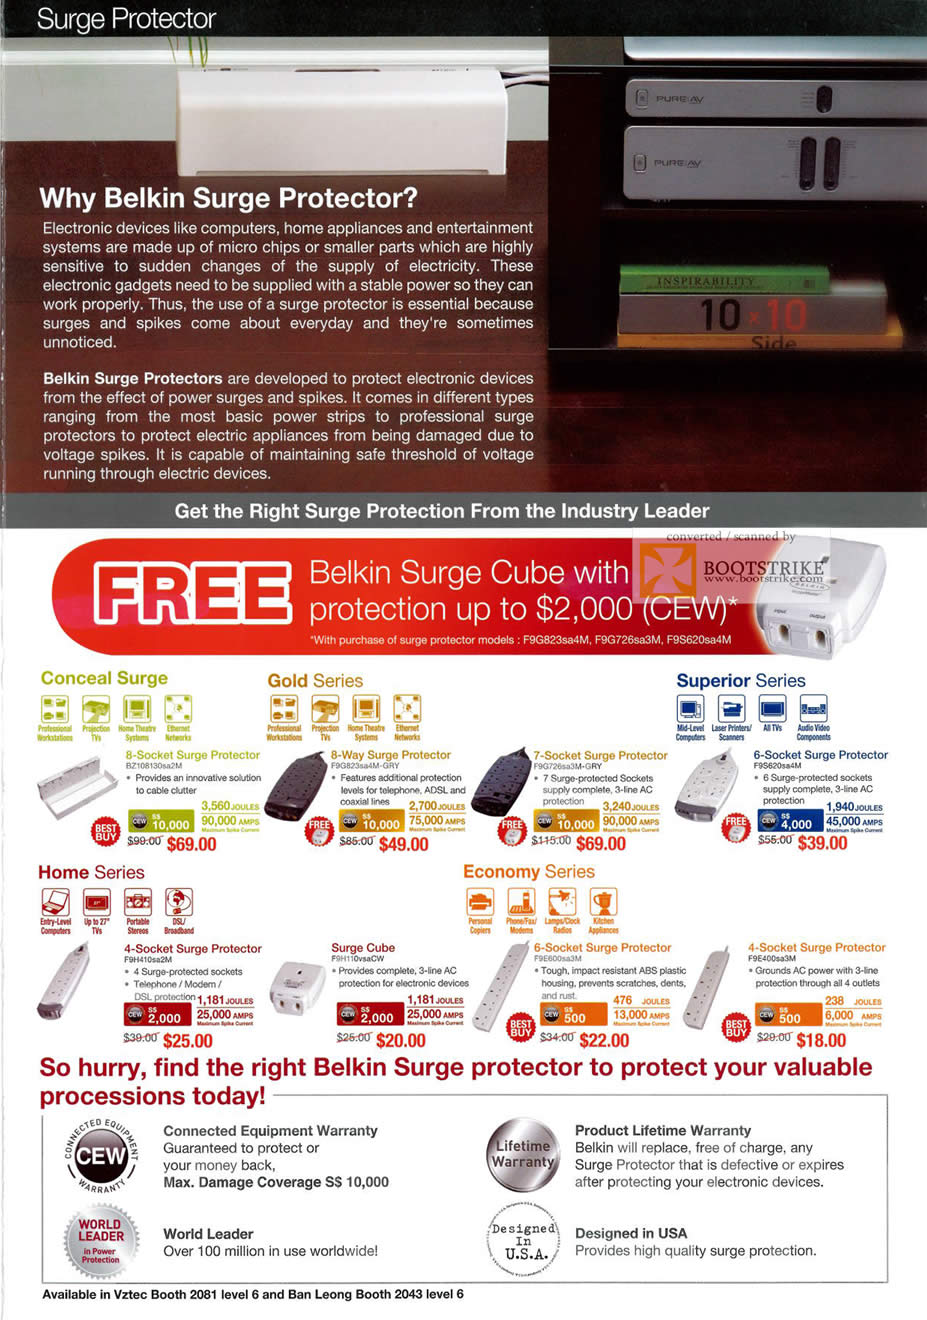 PC Show 2011 price list image brochure of Belkin Surge Protector Conceal Gold Superior Home Cube Economy Socket